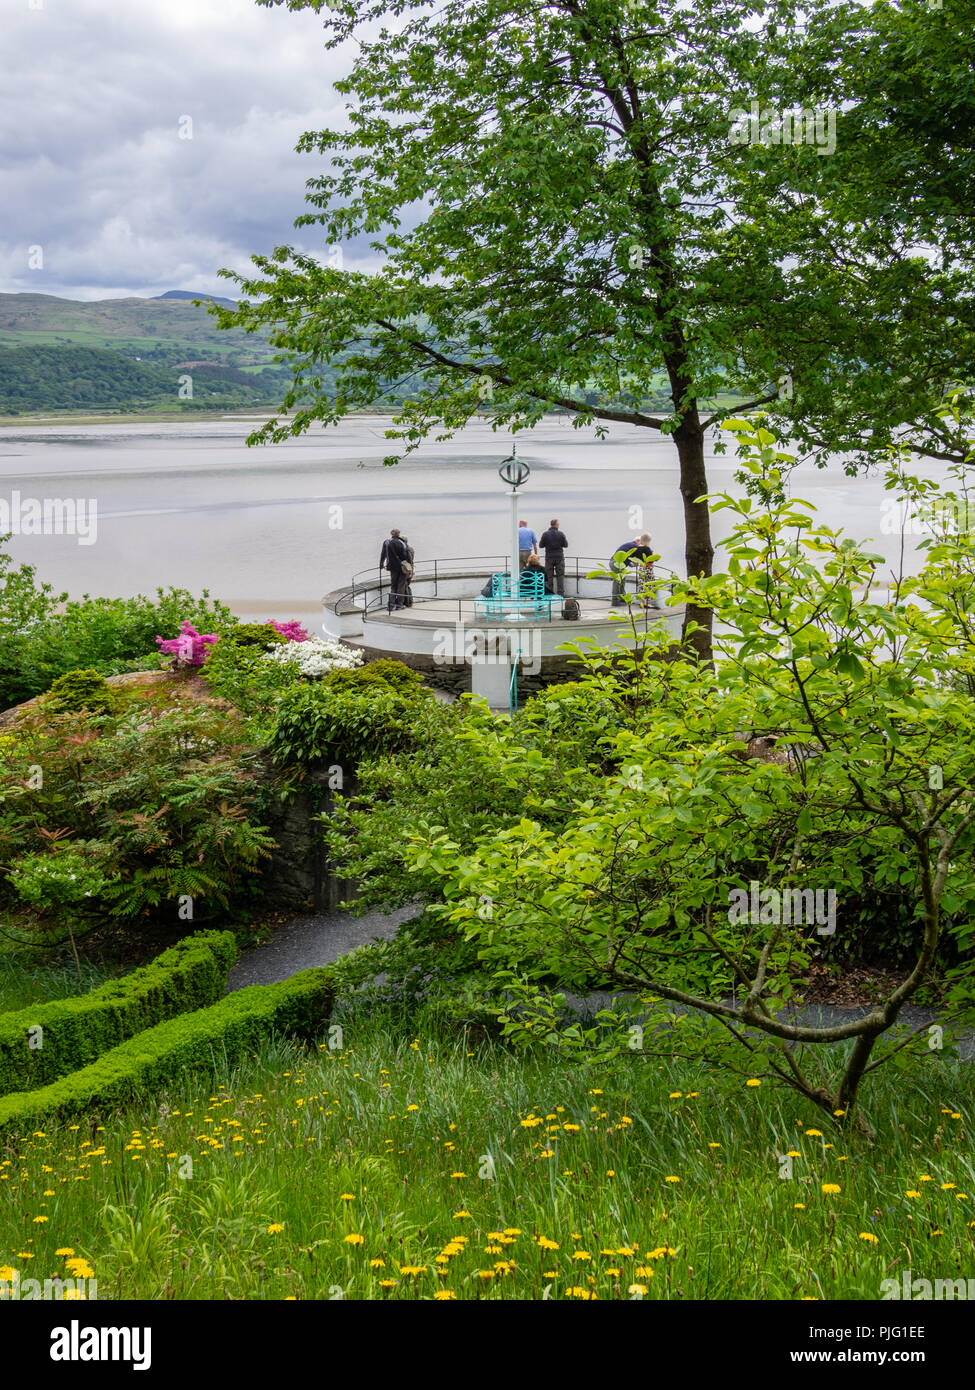 Portmeirion garden path leading to a deck with a view of River Dwyryd, North Wales, UK. Stock Photo